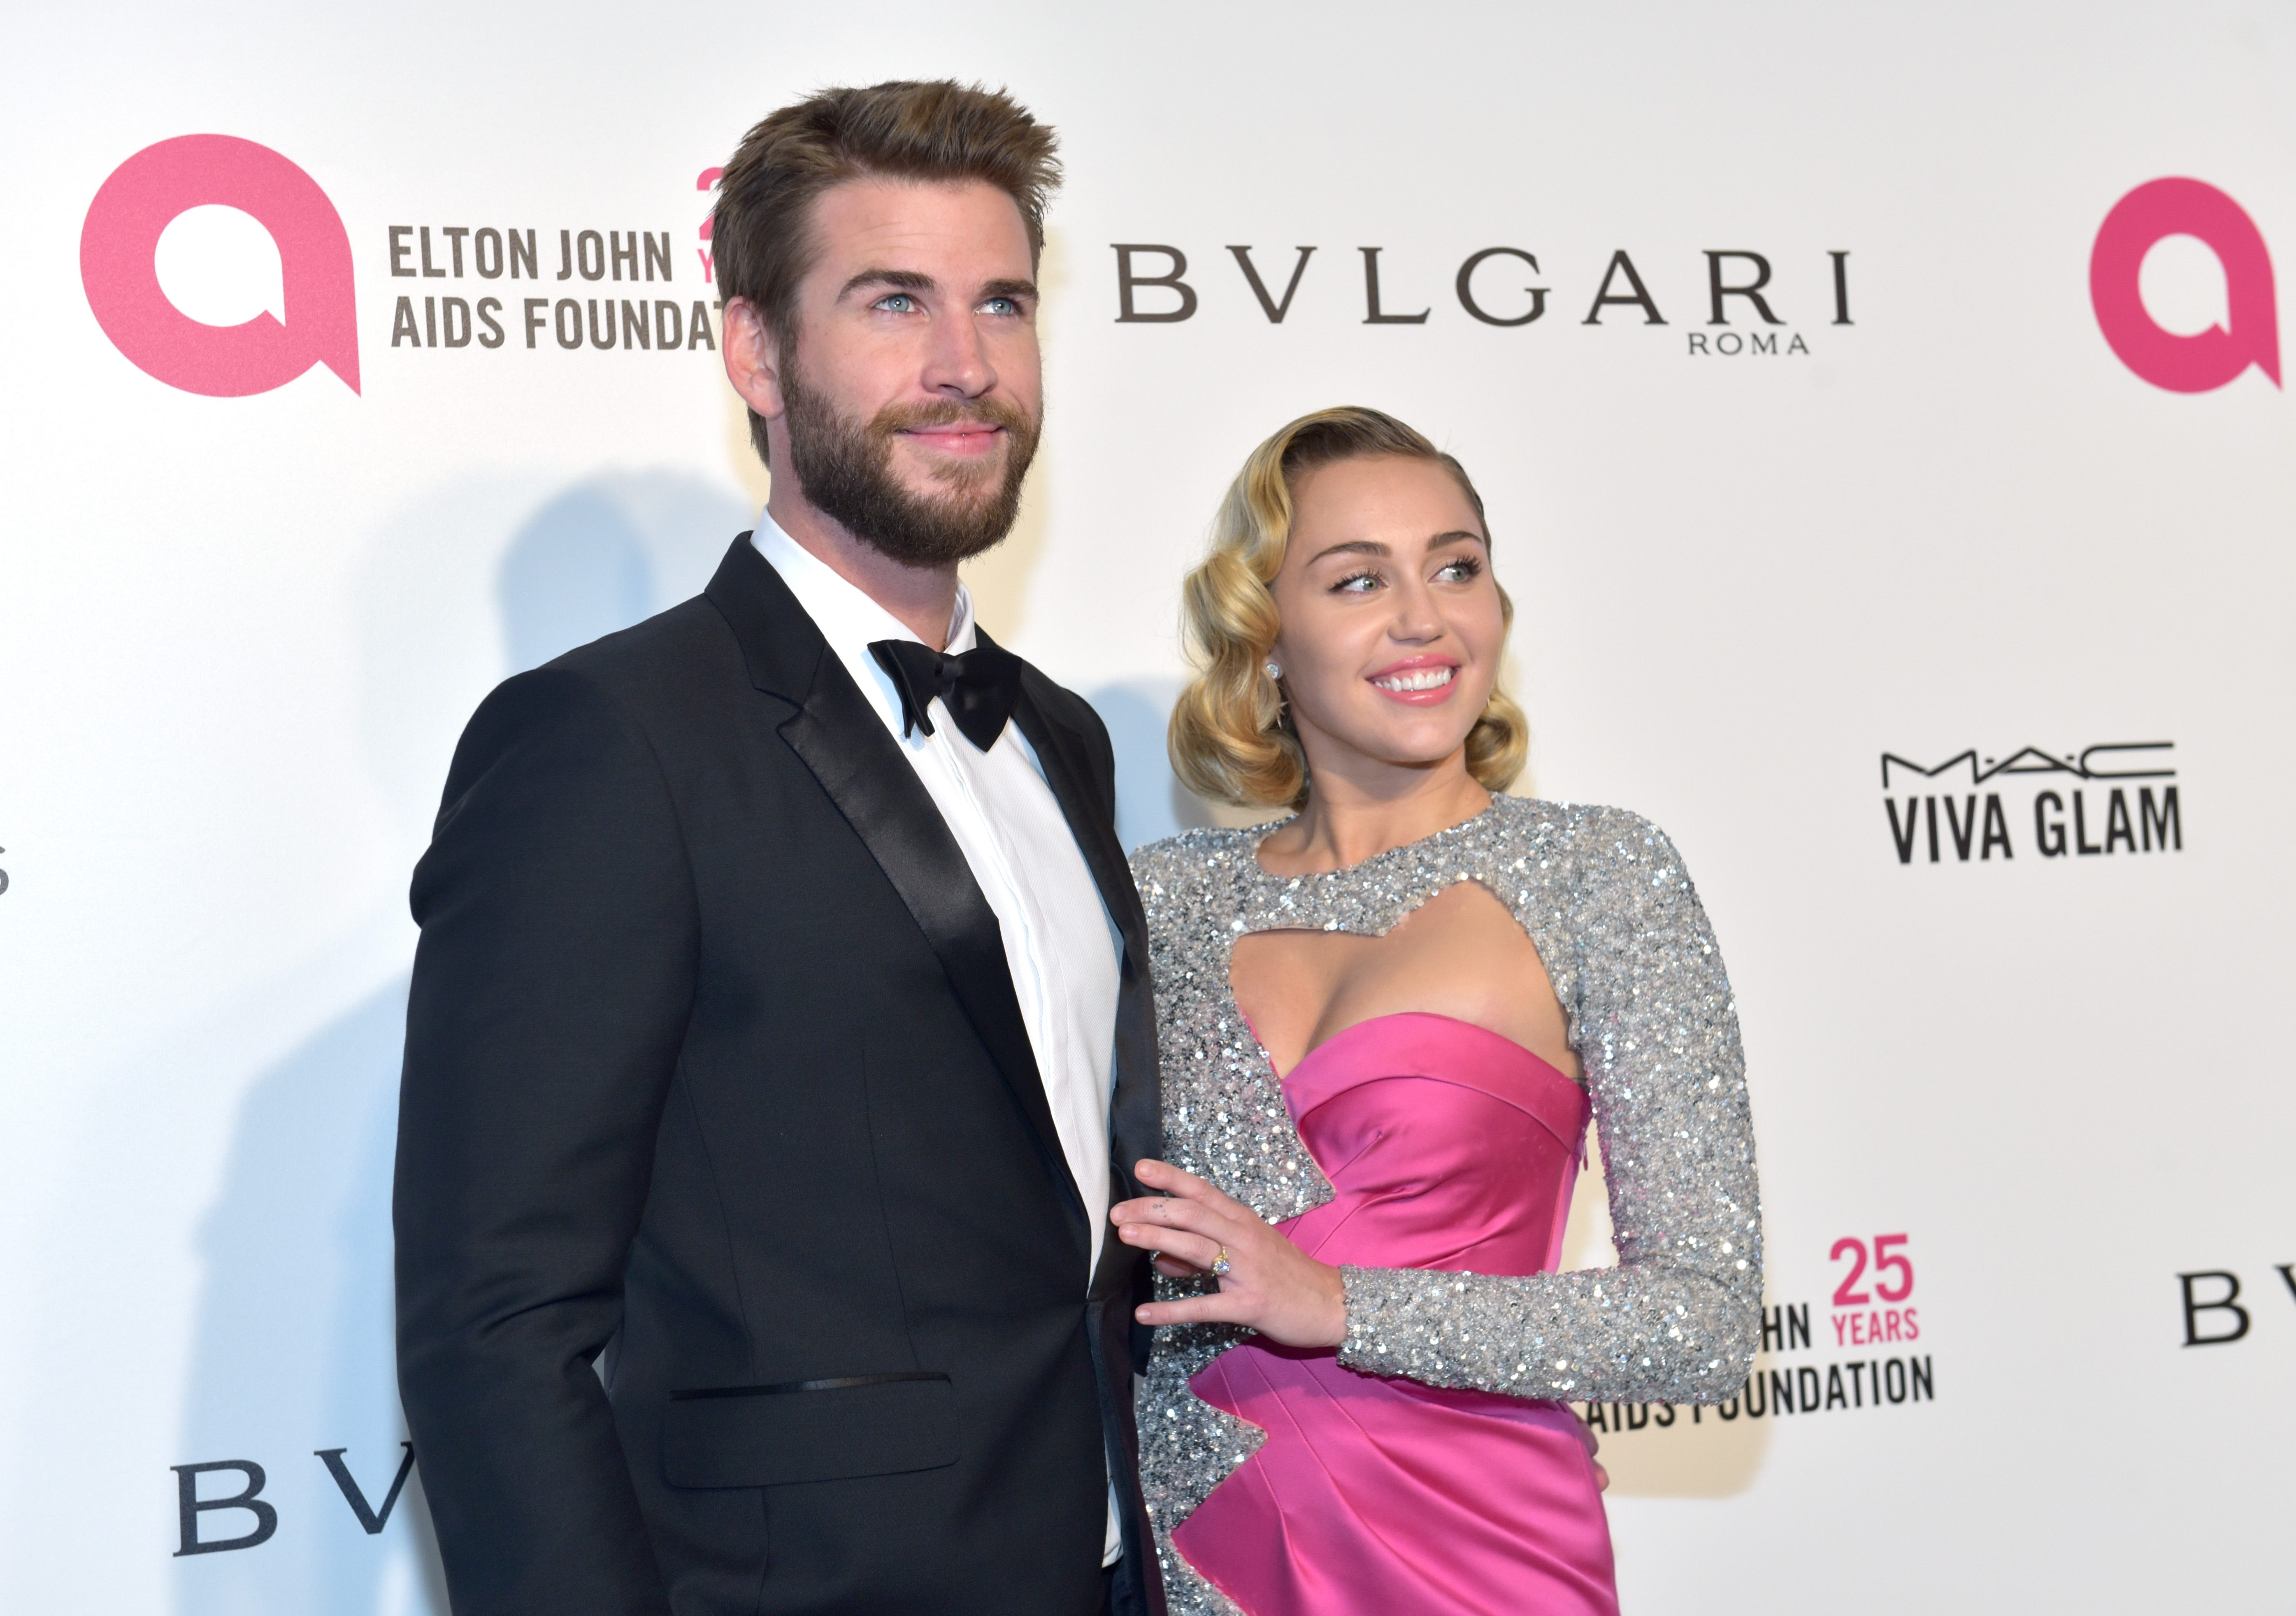 Are Miley Cyrus and Liam Hemsworth married? Fans speculate after pics emerge from party